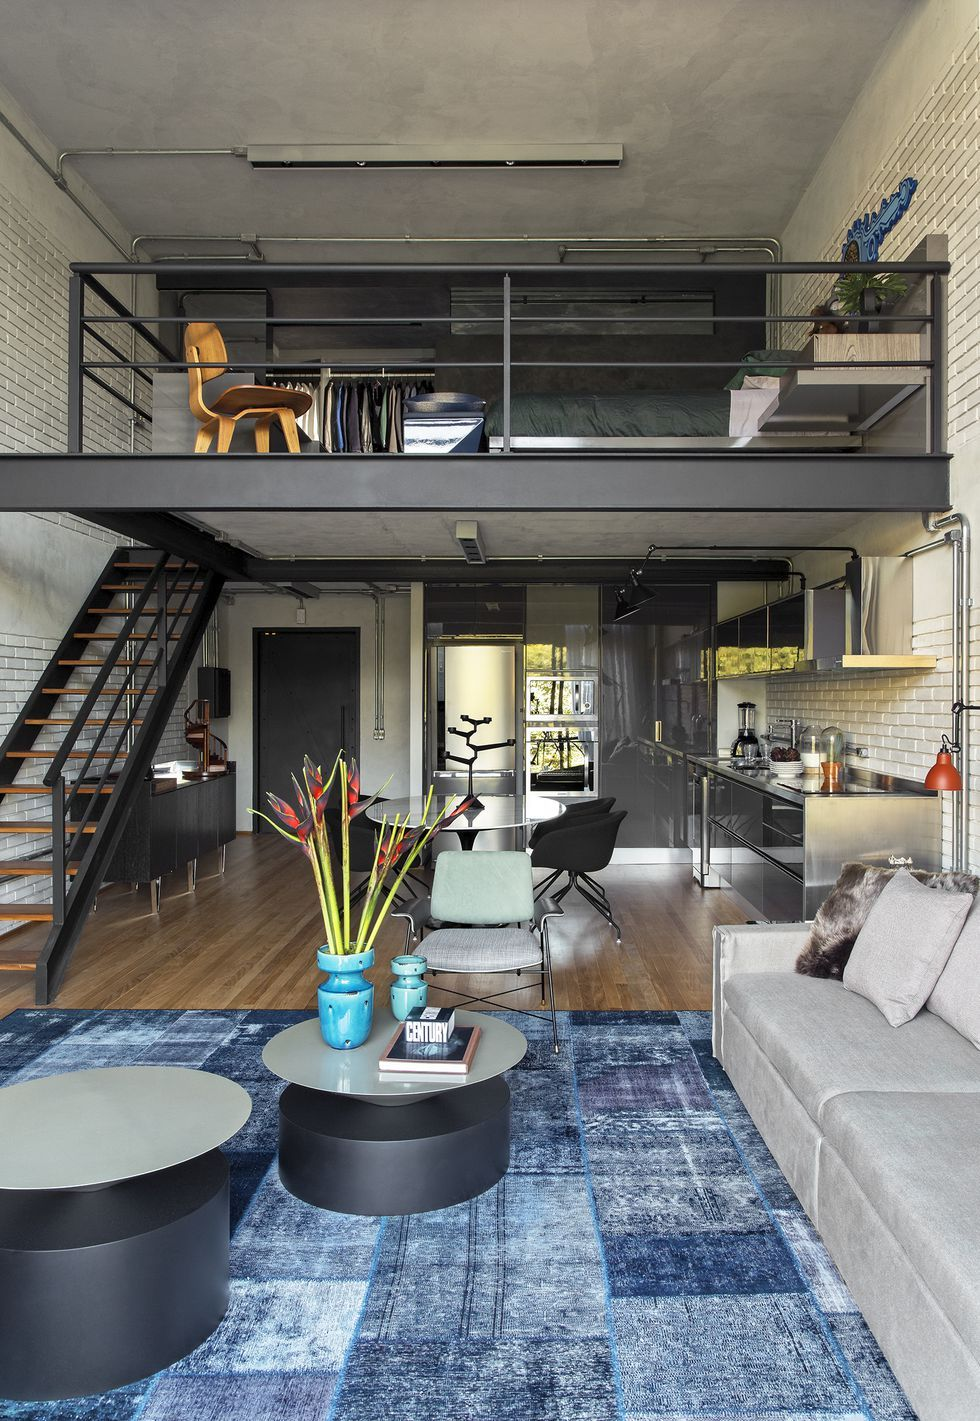 Un loft de estilo industrial refinado is part of Un Loft De Estilo Industrial Refinado Elledecor Com - Diego Revollo ha sabido imprimir el carácter industrial a este piso de distribución abierta con un interiorismo sobrio de tonos oscuros